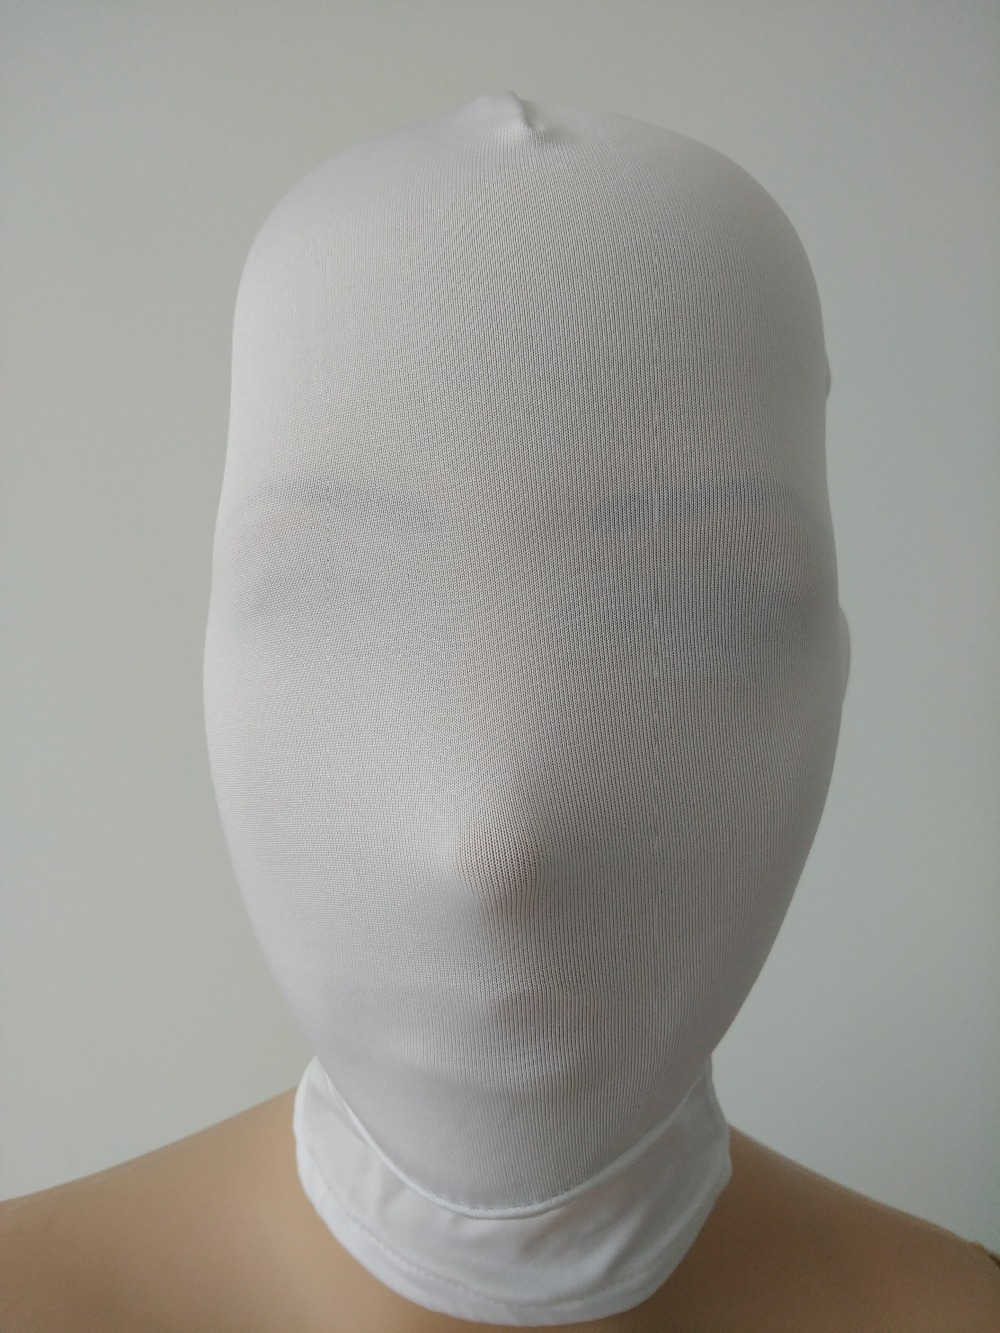 Zip Face Scary halloween mask lycra printed face mask slenderman